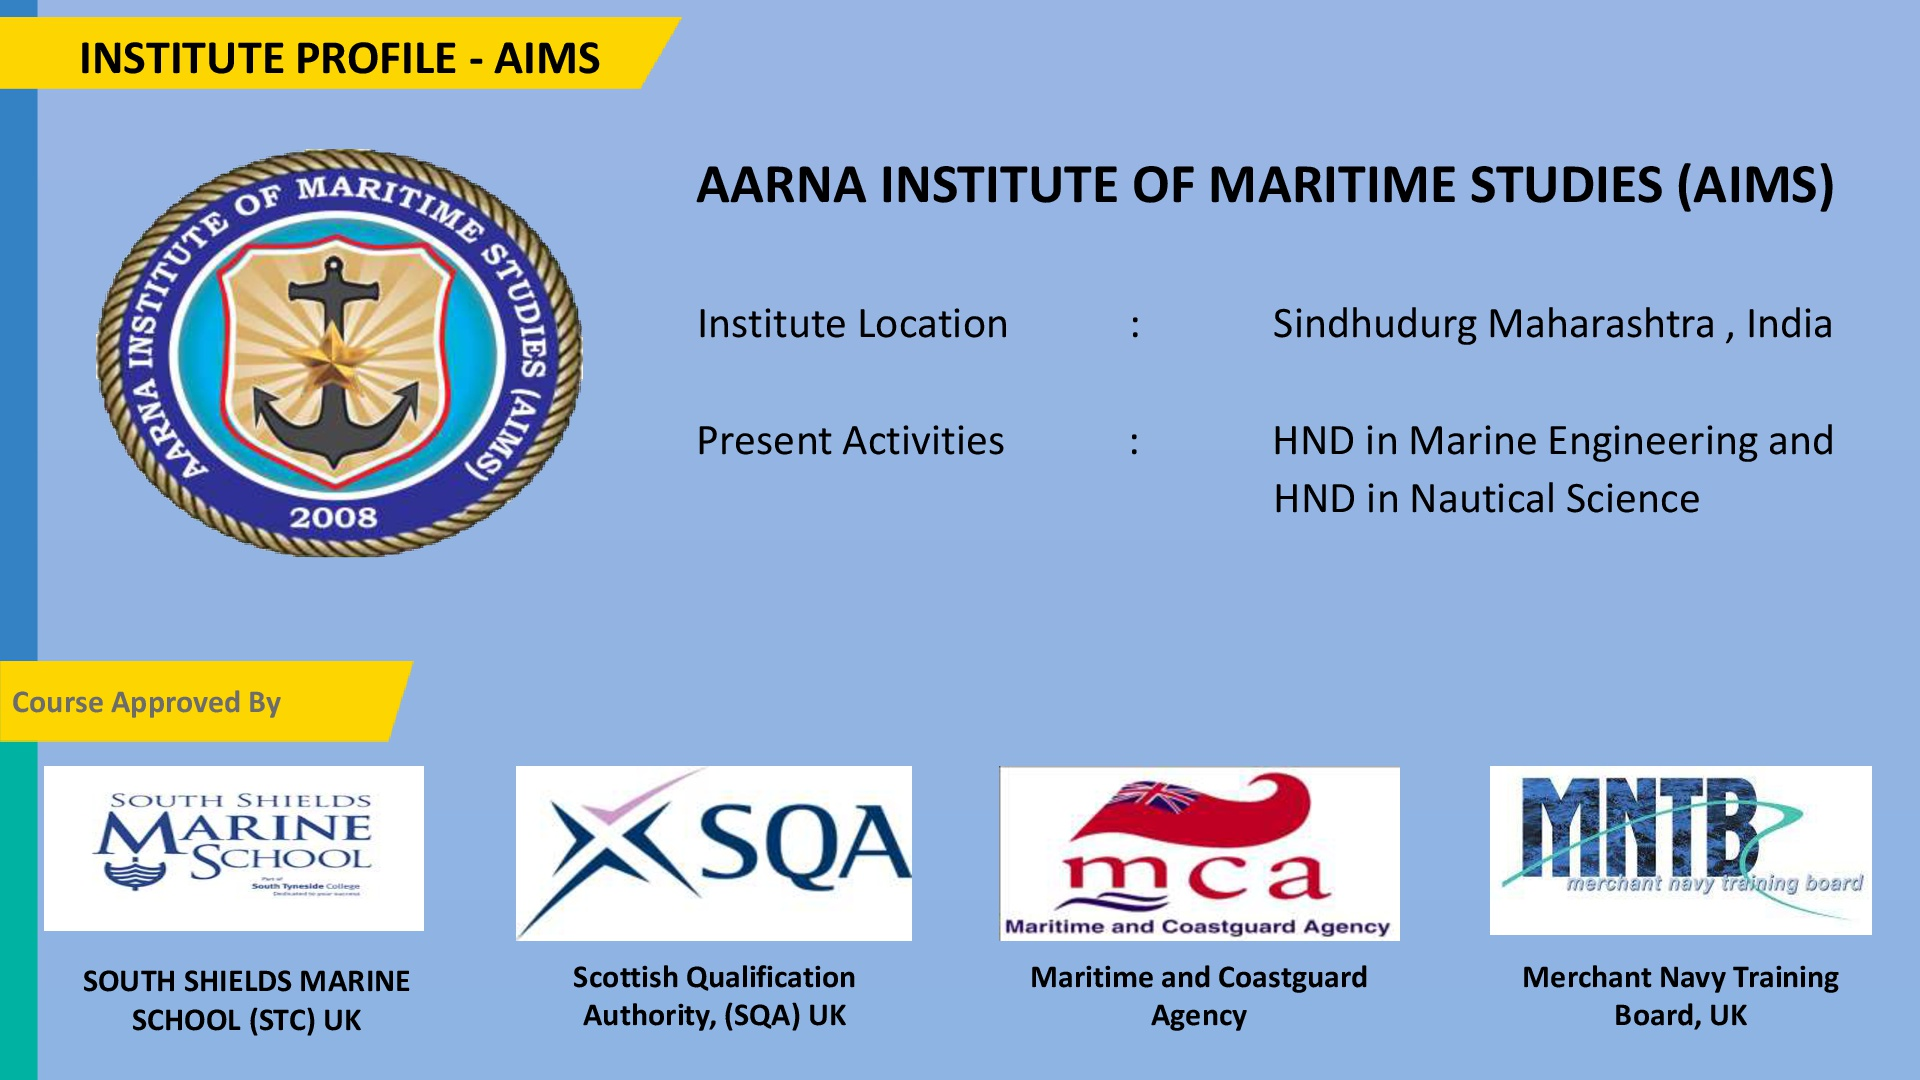 2. OUR GROUP INSTITUTE (AIMS)